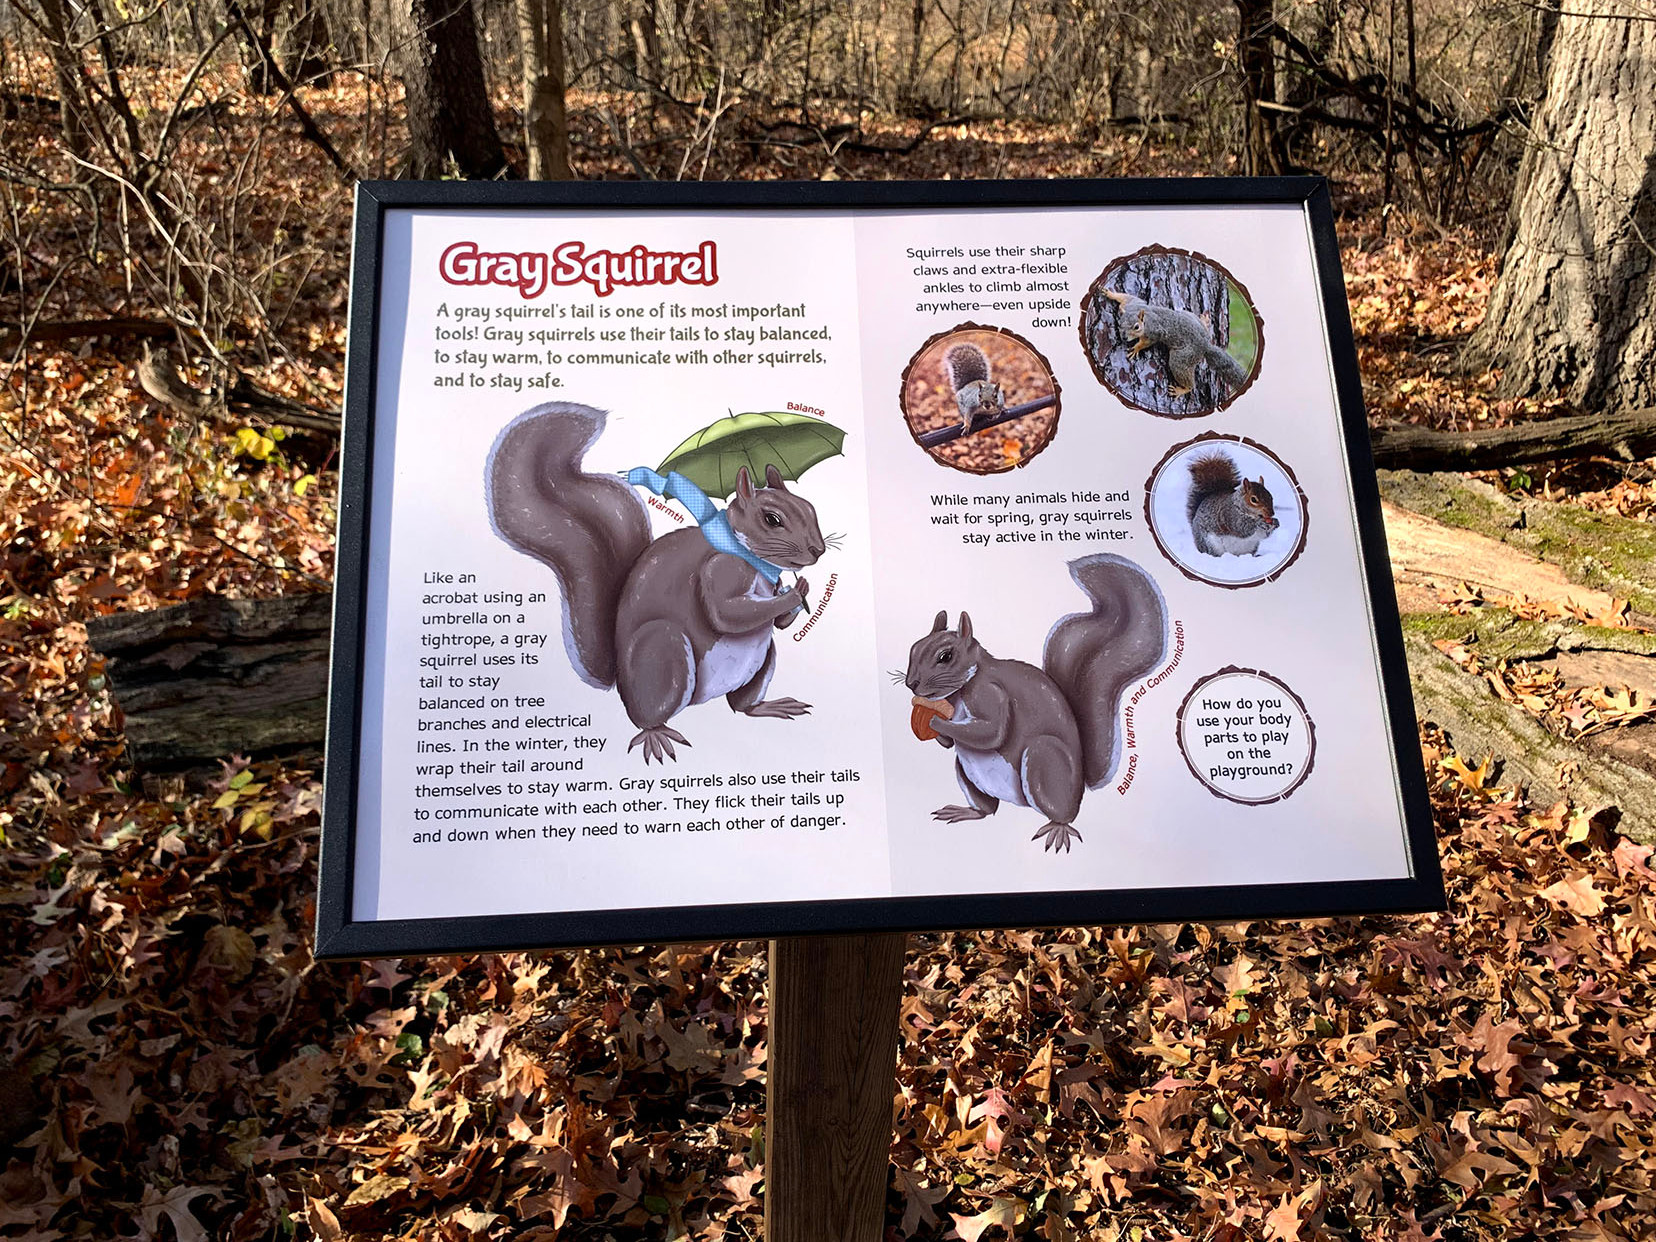 An interpretive sign in the woods depicting a gray squirrel in a fun cartoon style.